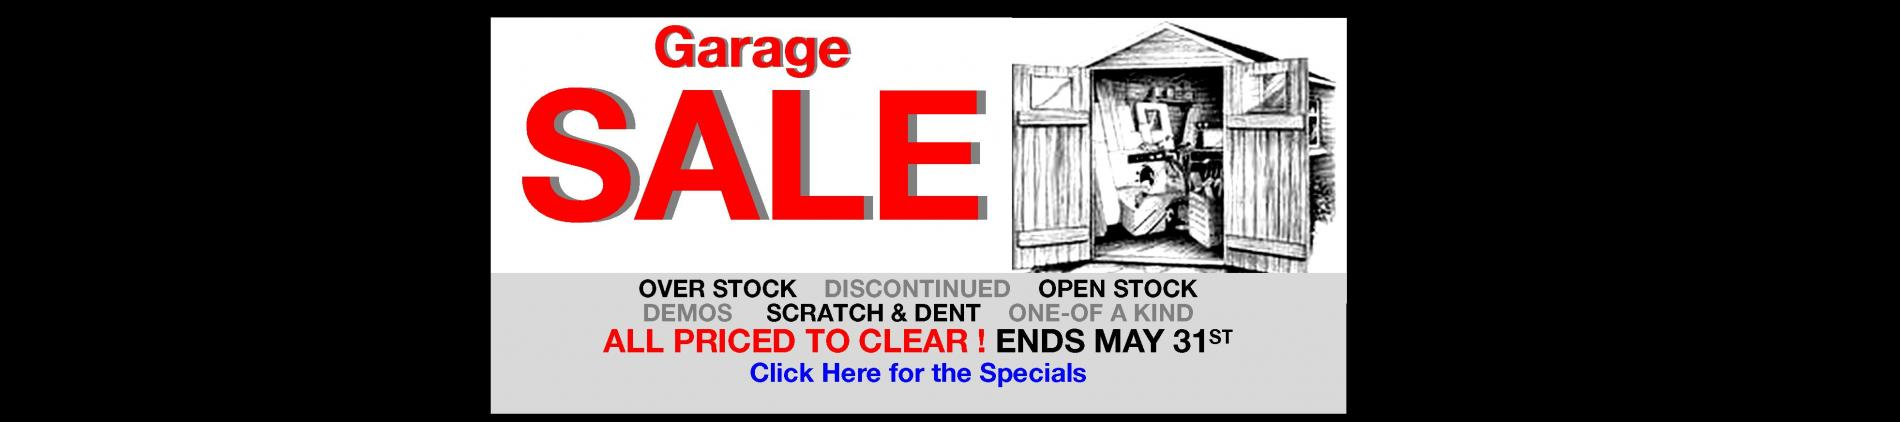 7th Annual Garage store-Wide Sale Atlas AVU. Amazing Deals in every department